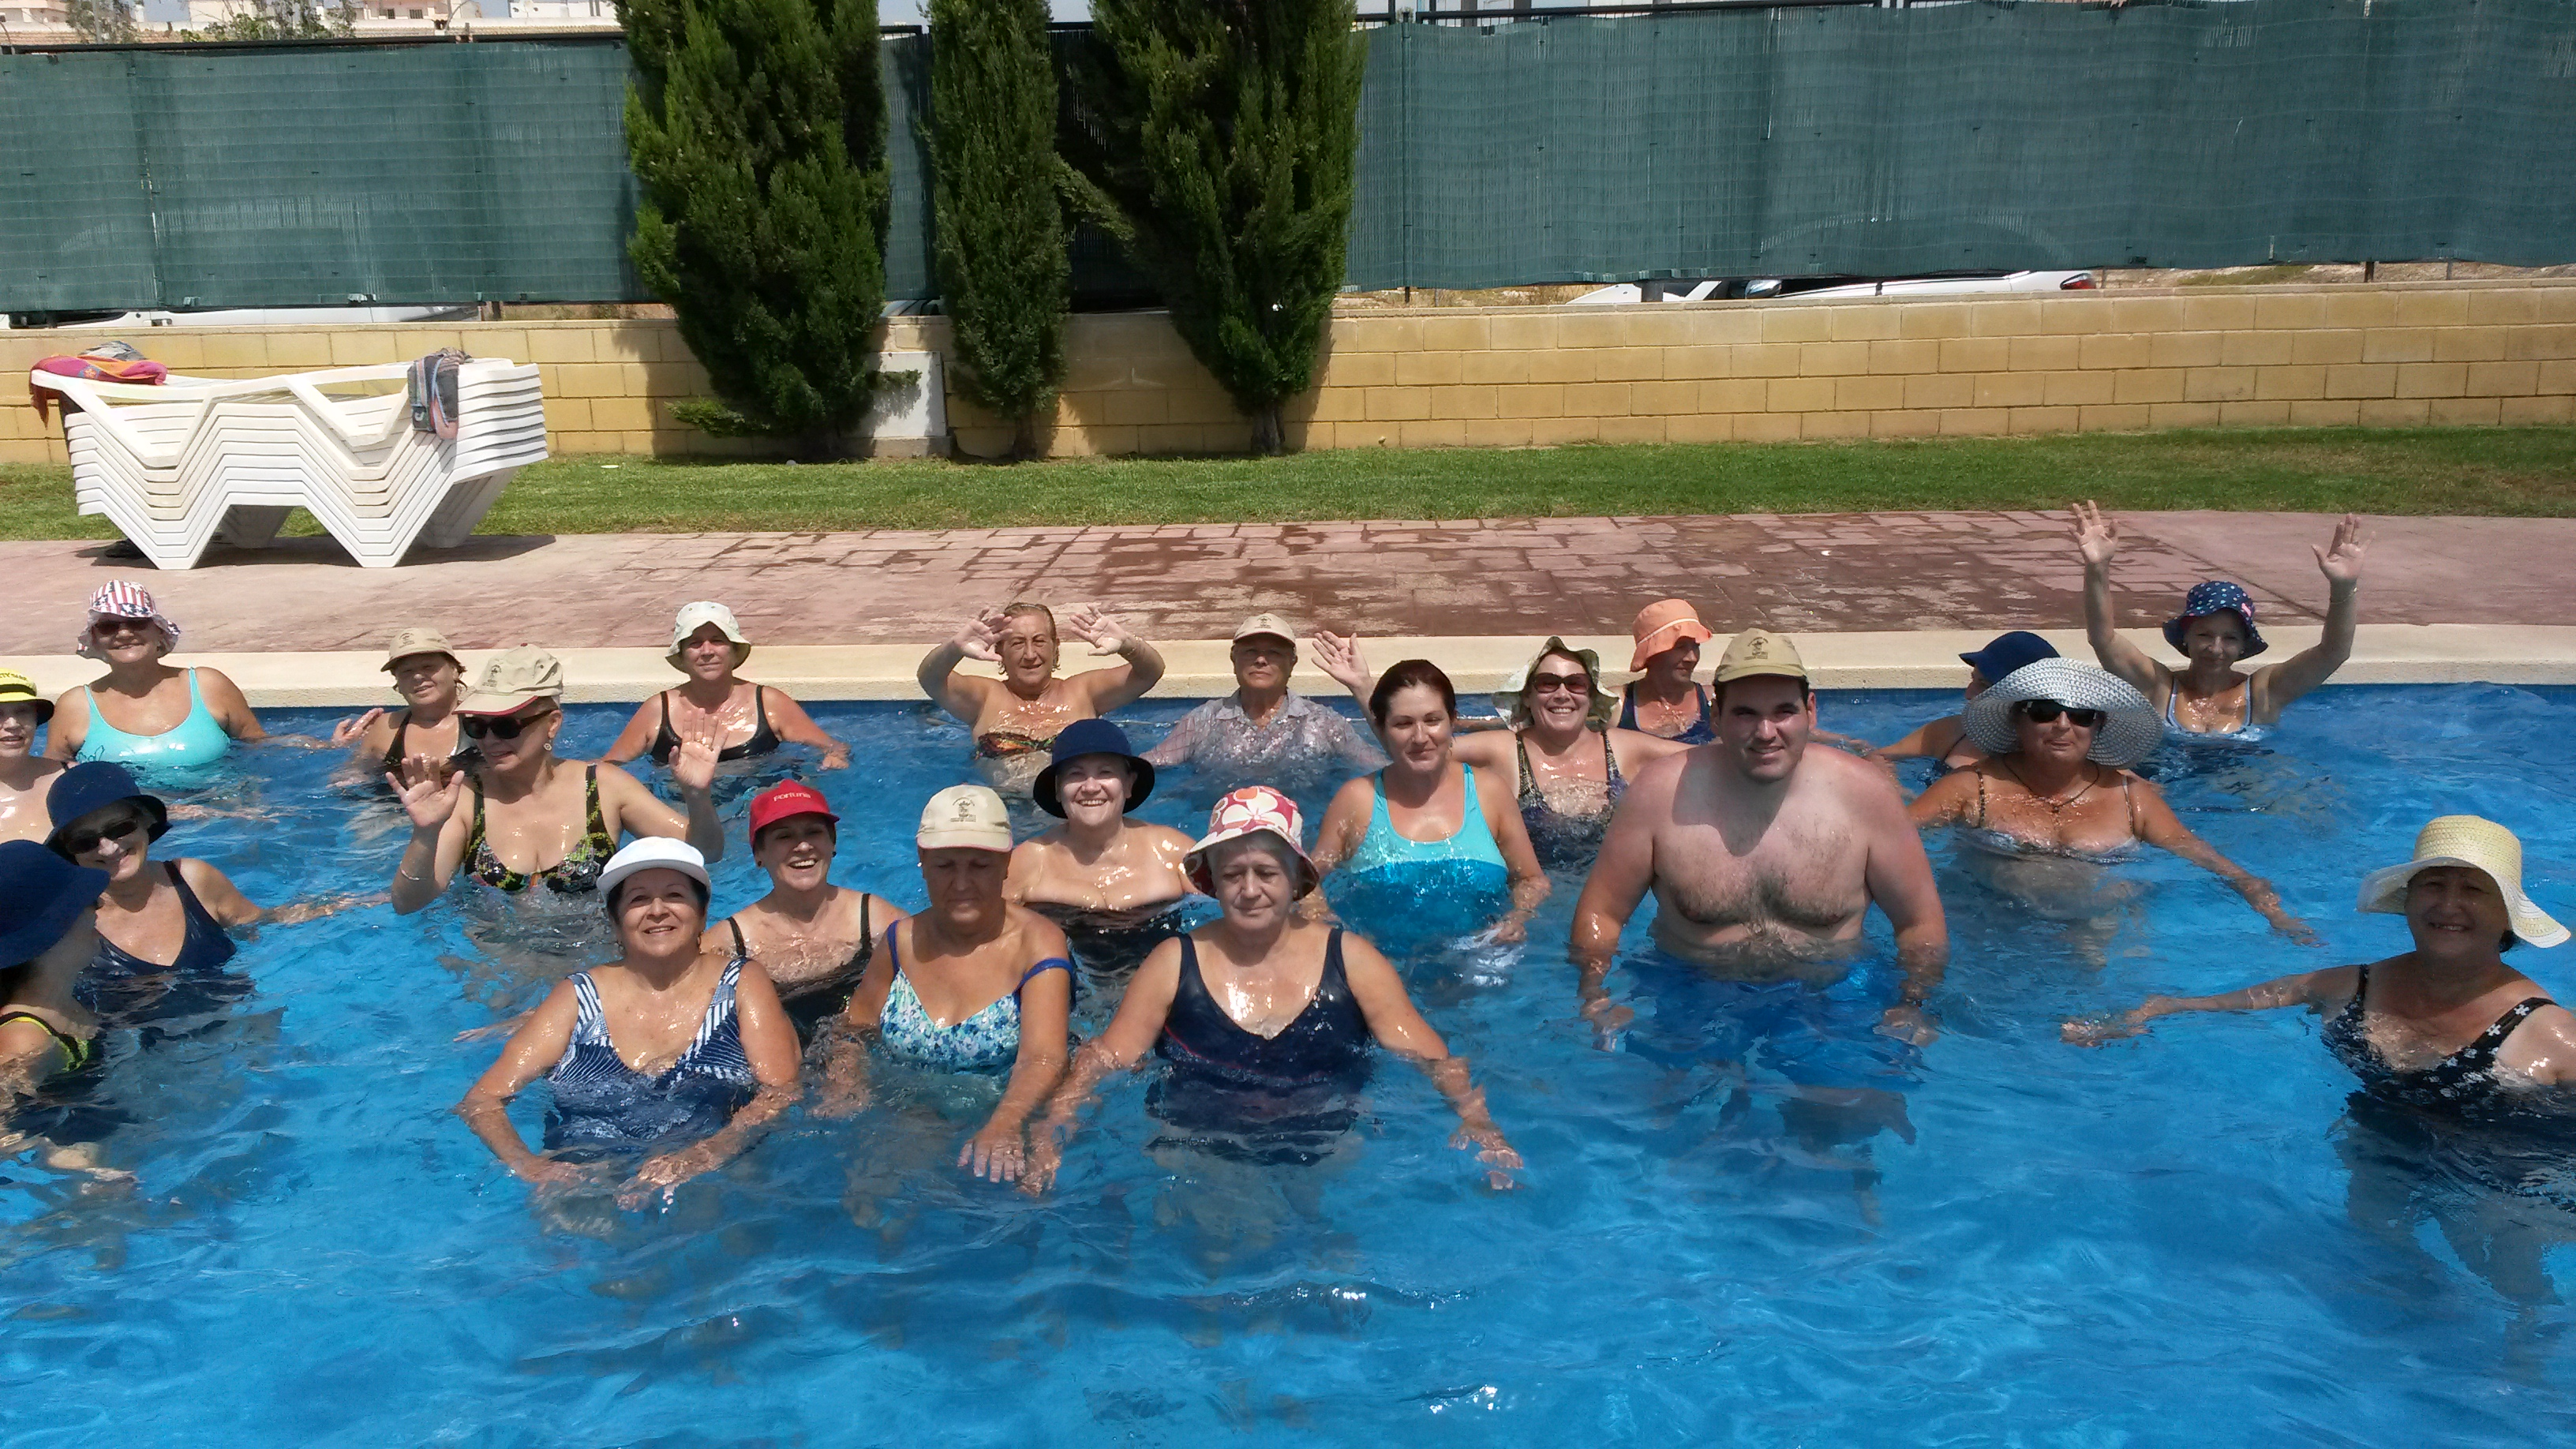 La energ a imparable de las personas mayores que son for Escaleras piscina para personas mayores